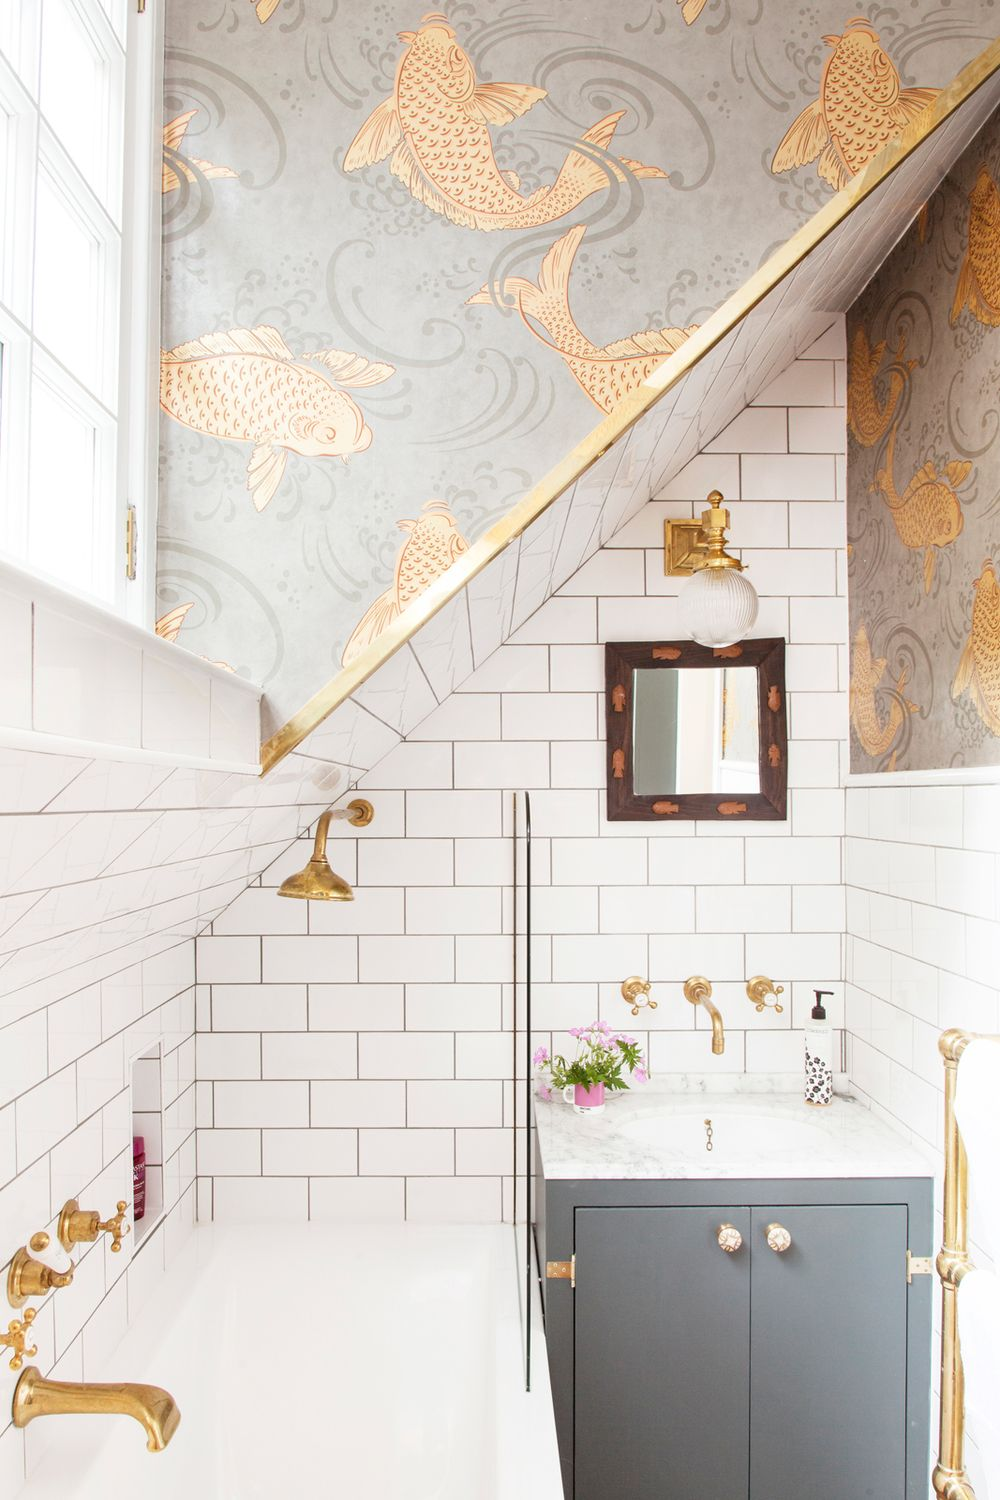 Stylish Remodeling Ideas for Small Bathrooms | Small bathroom, Brass ...